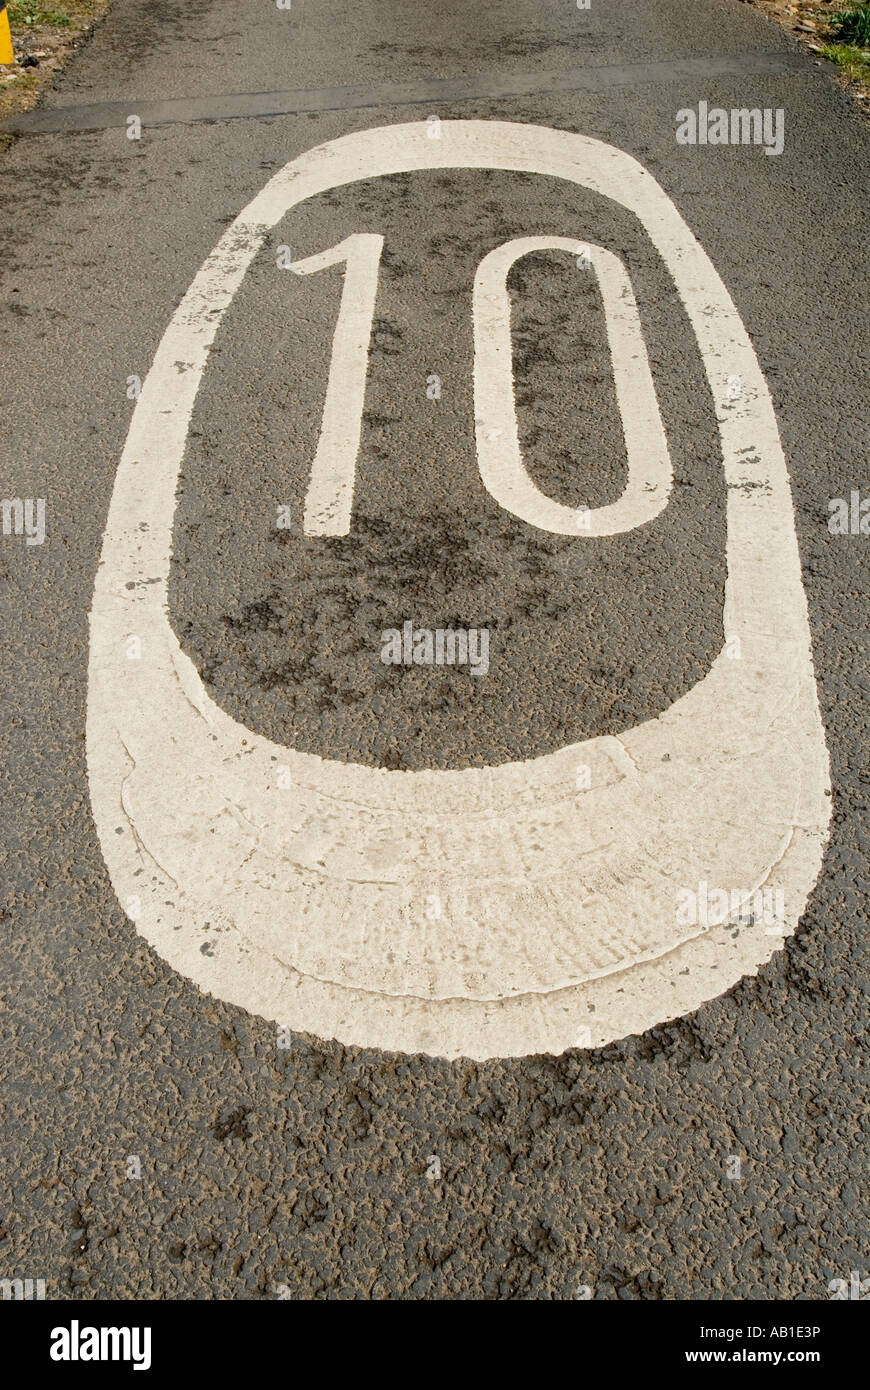 speed limit marking on road - Stock Image